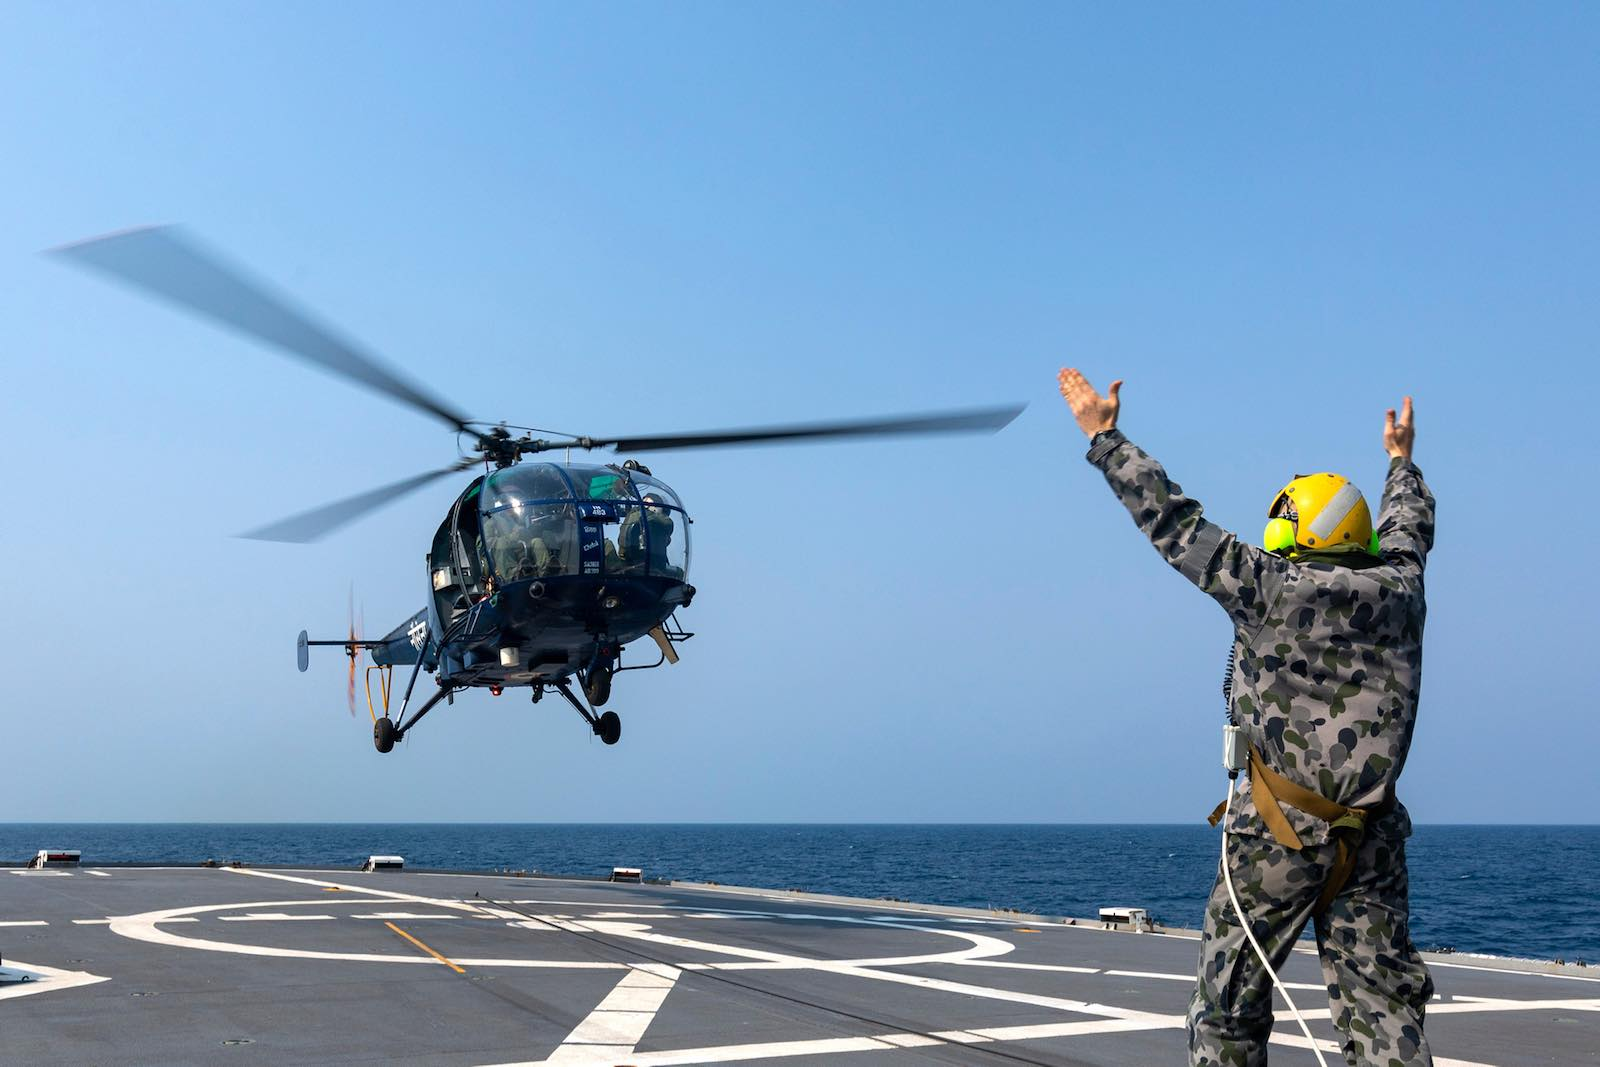 An Indian Navy Chetak helicopter lifts off from HMAS Parramatta during AUSINDEX 2019, in the Bay of Bengal (Australian Defence Force)